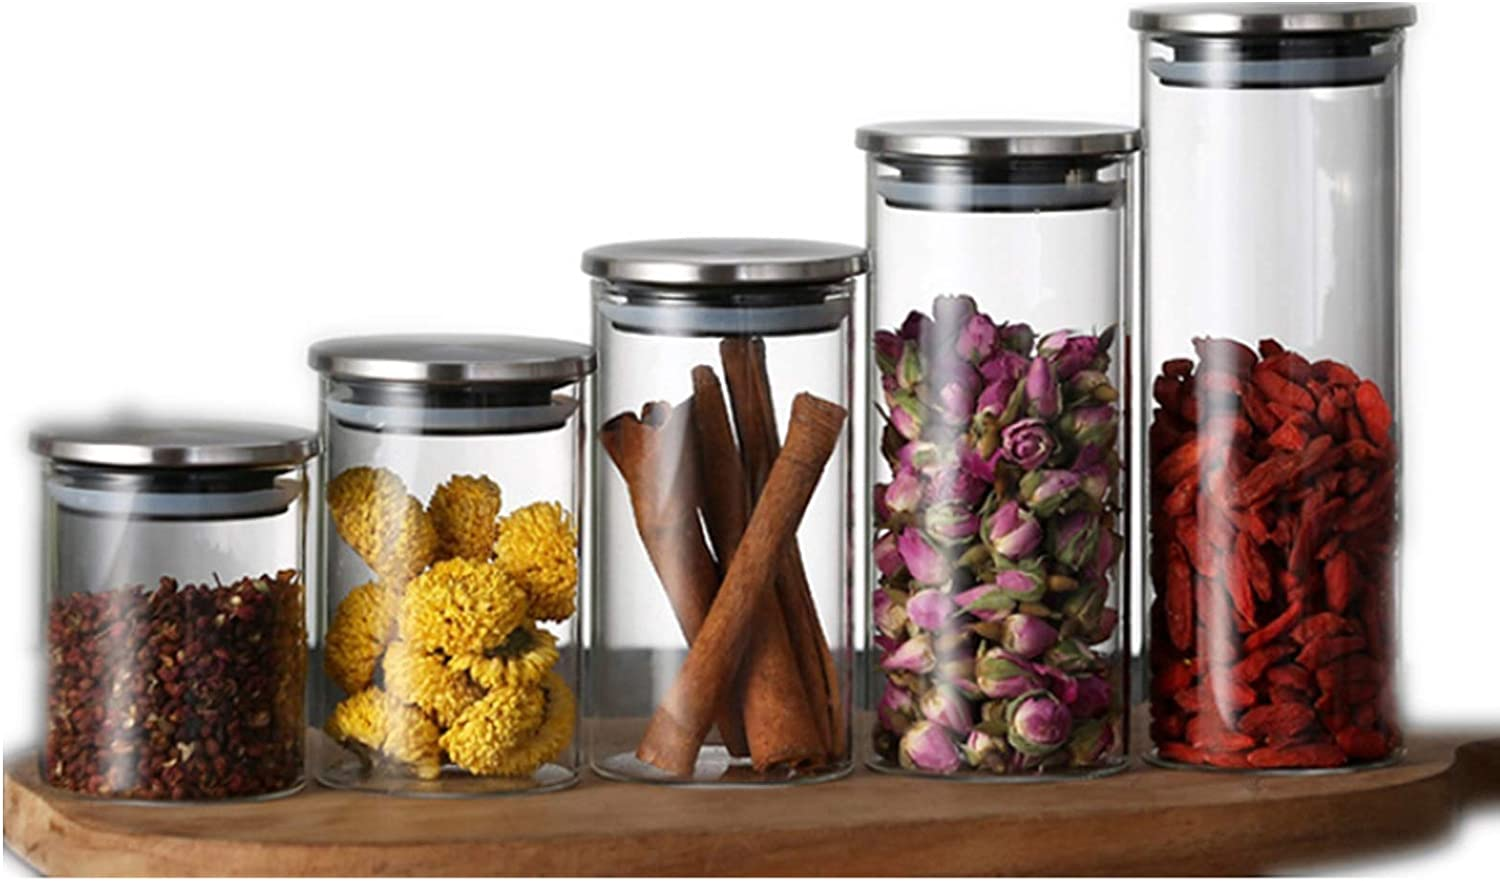 Leak-Proof Food Fashionable Storage Containers Airtight Steel Stainless with Factory outlet